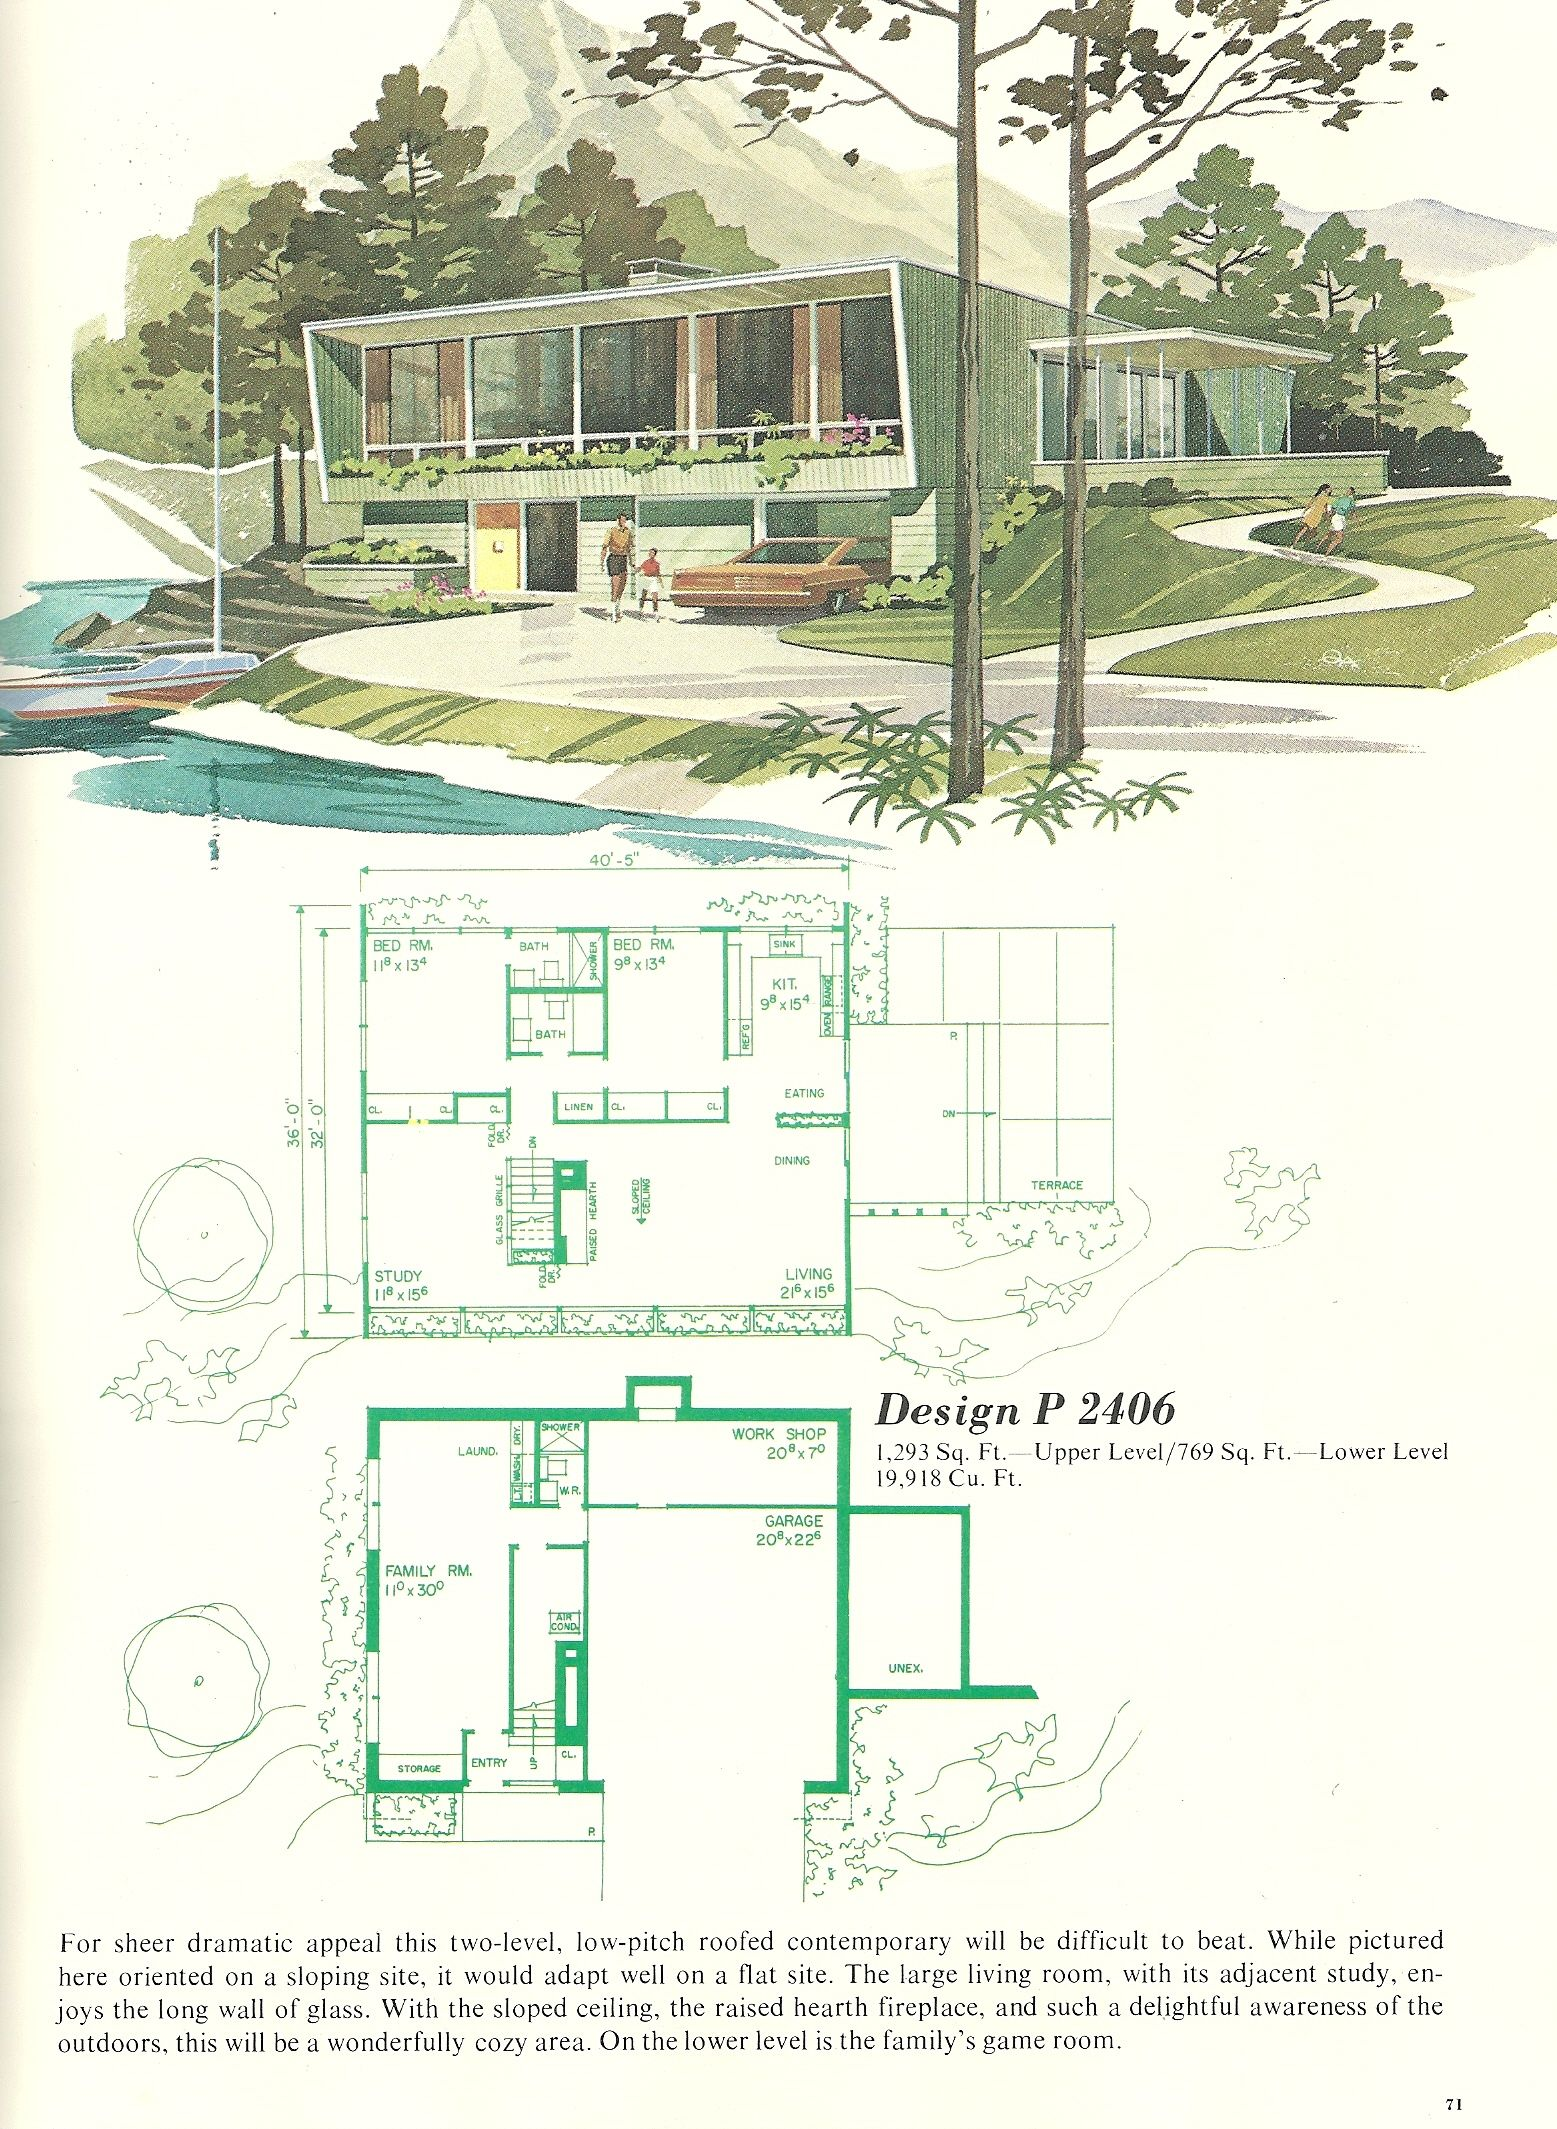 Vintage Vacation Homes 2406 Vintage House Plans Modern House Plans Mid Century Modern House